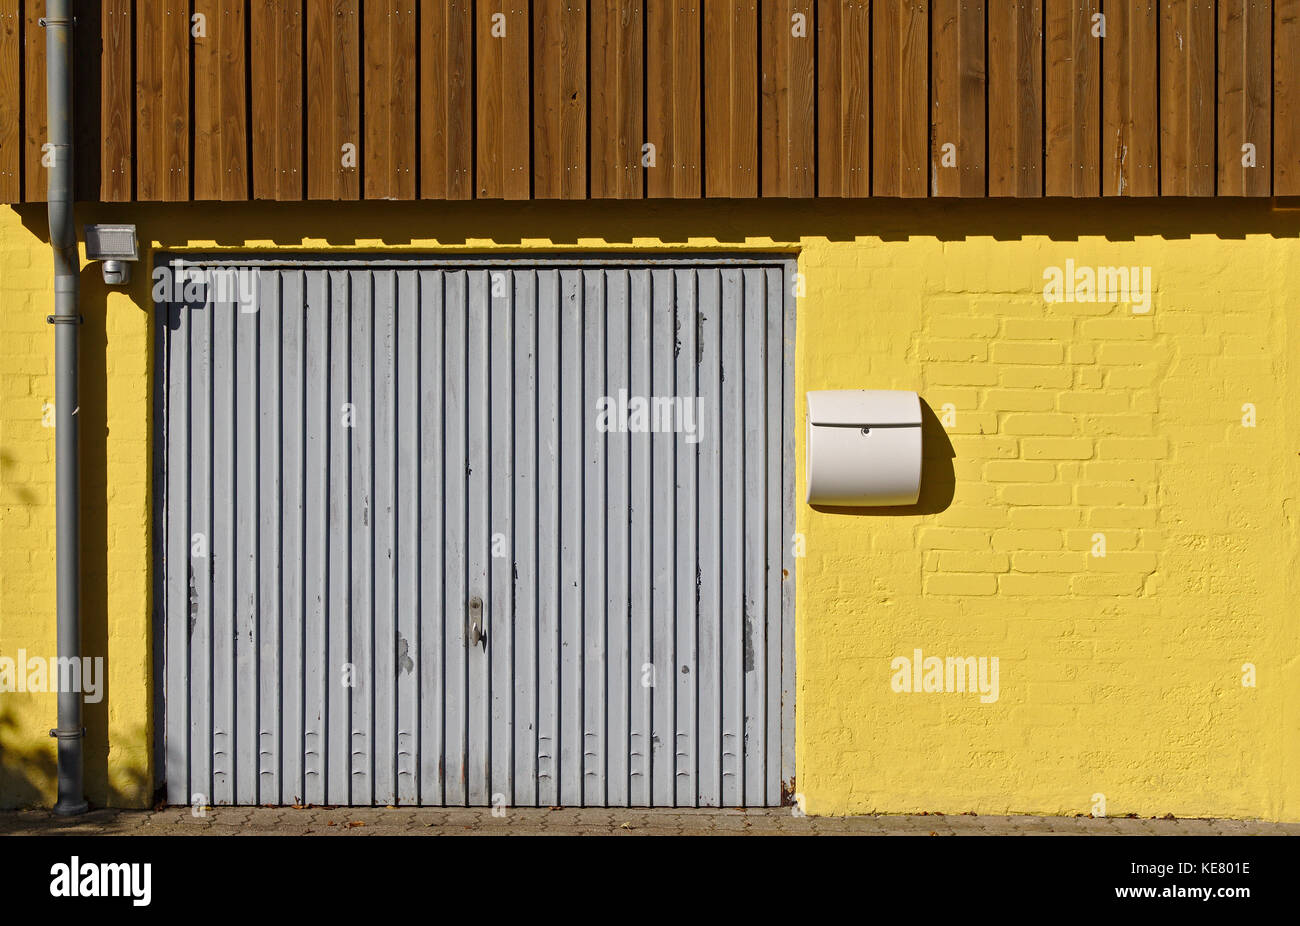 Yellow brick wall with garage door mail box downspout and brown wooden paneling on